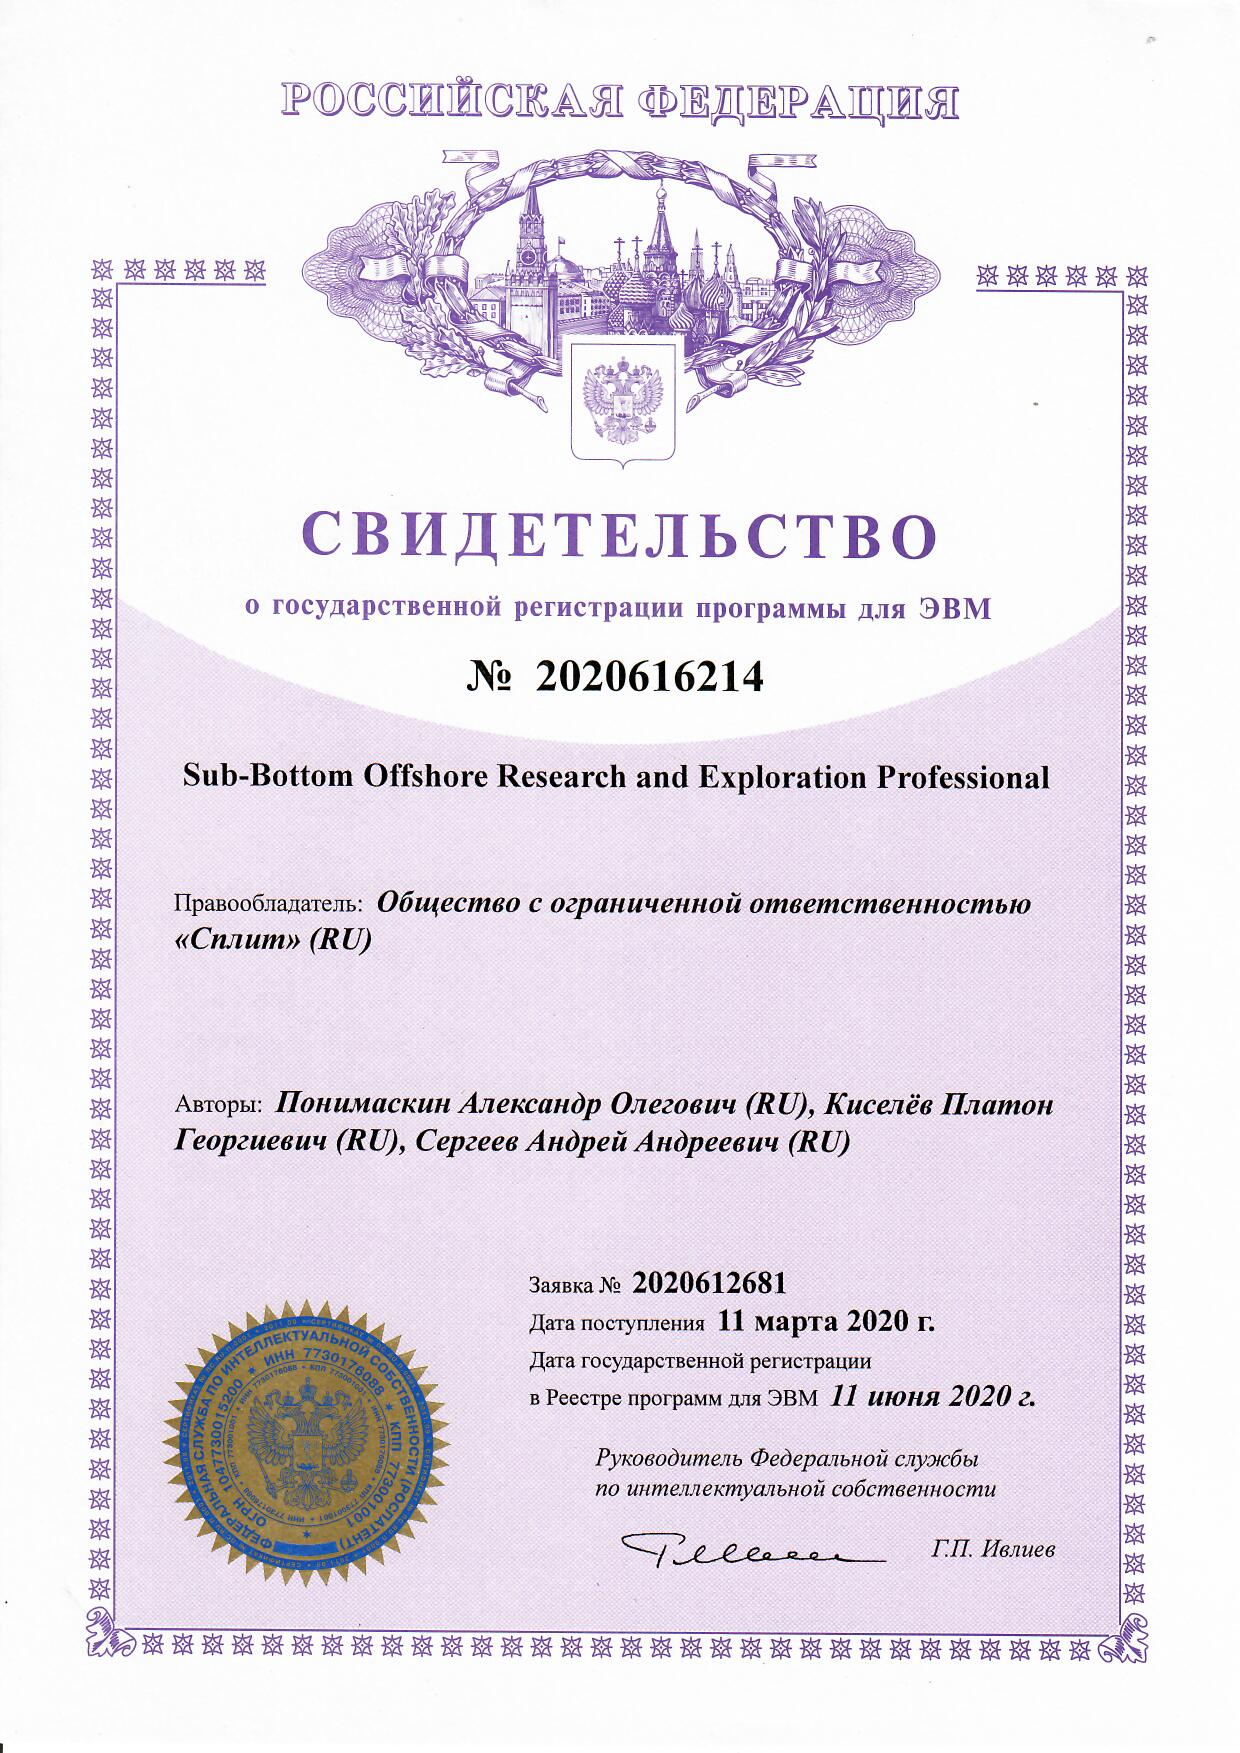 A certificate of registration of the SborEx Pro